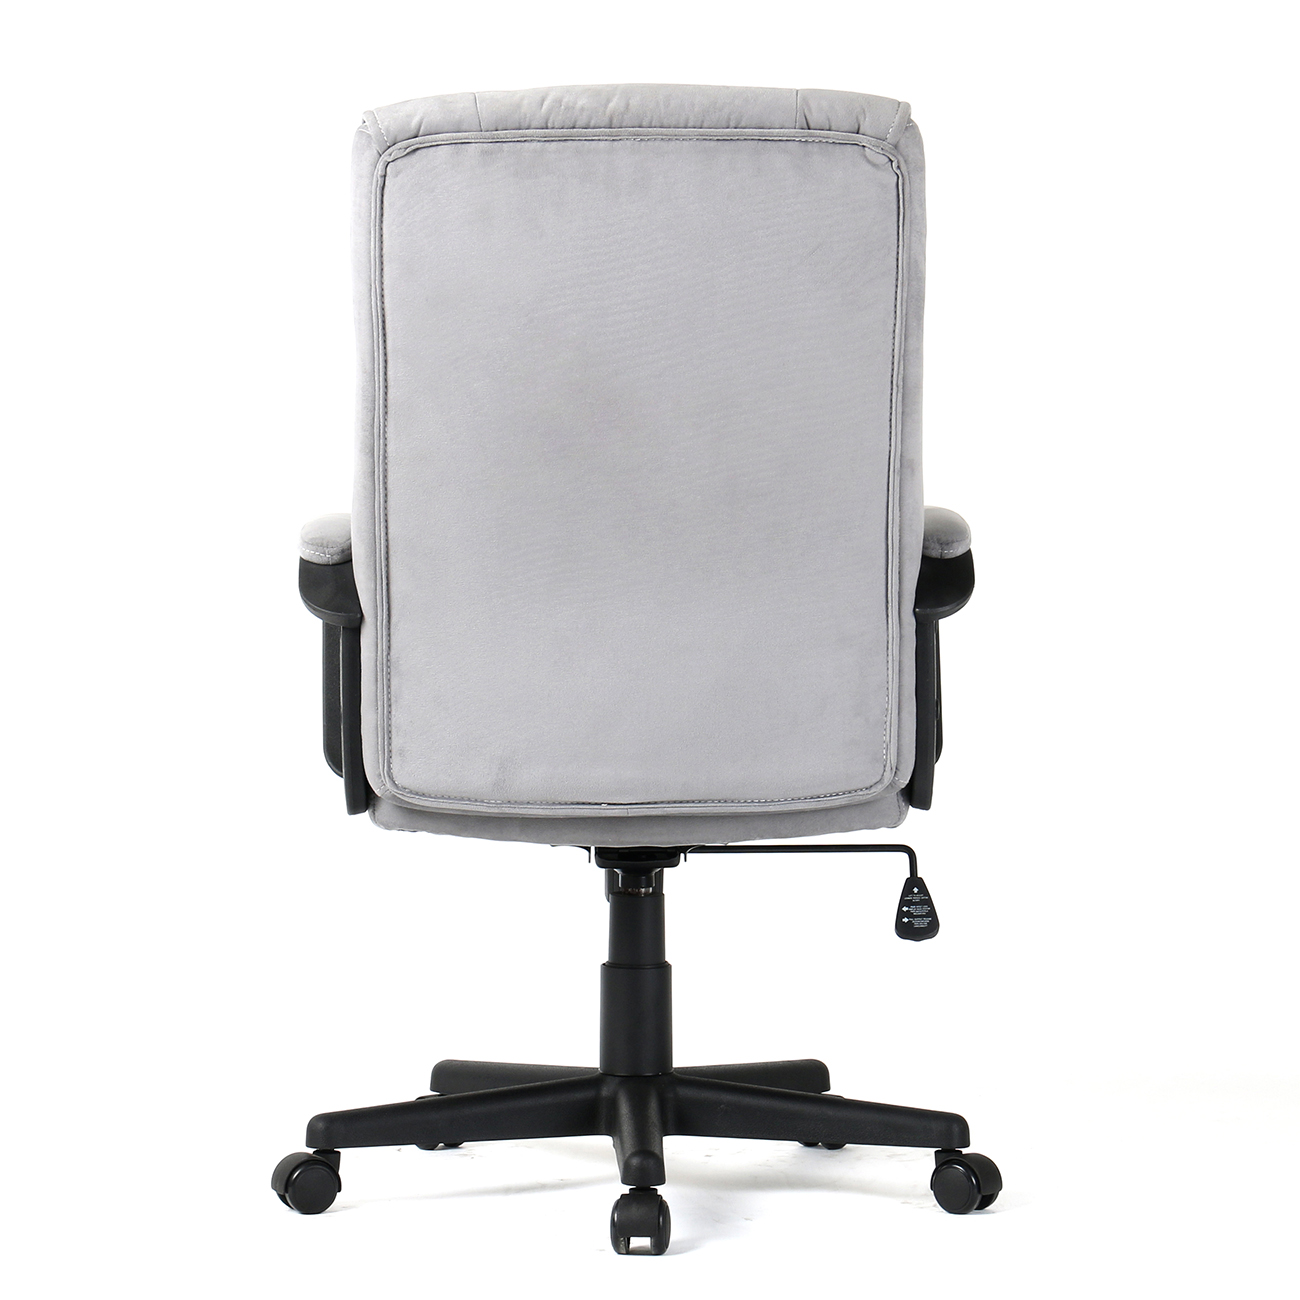 Brilliant Details About New Modern Microfiber Executive Office Chair Ergonomic High Seat Computer Desk Ocoug Best Dining Table And Chair Ideas Images Ocougorg